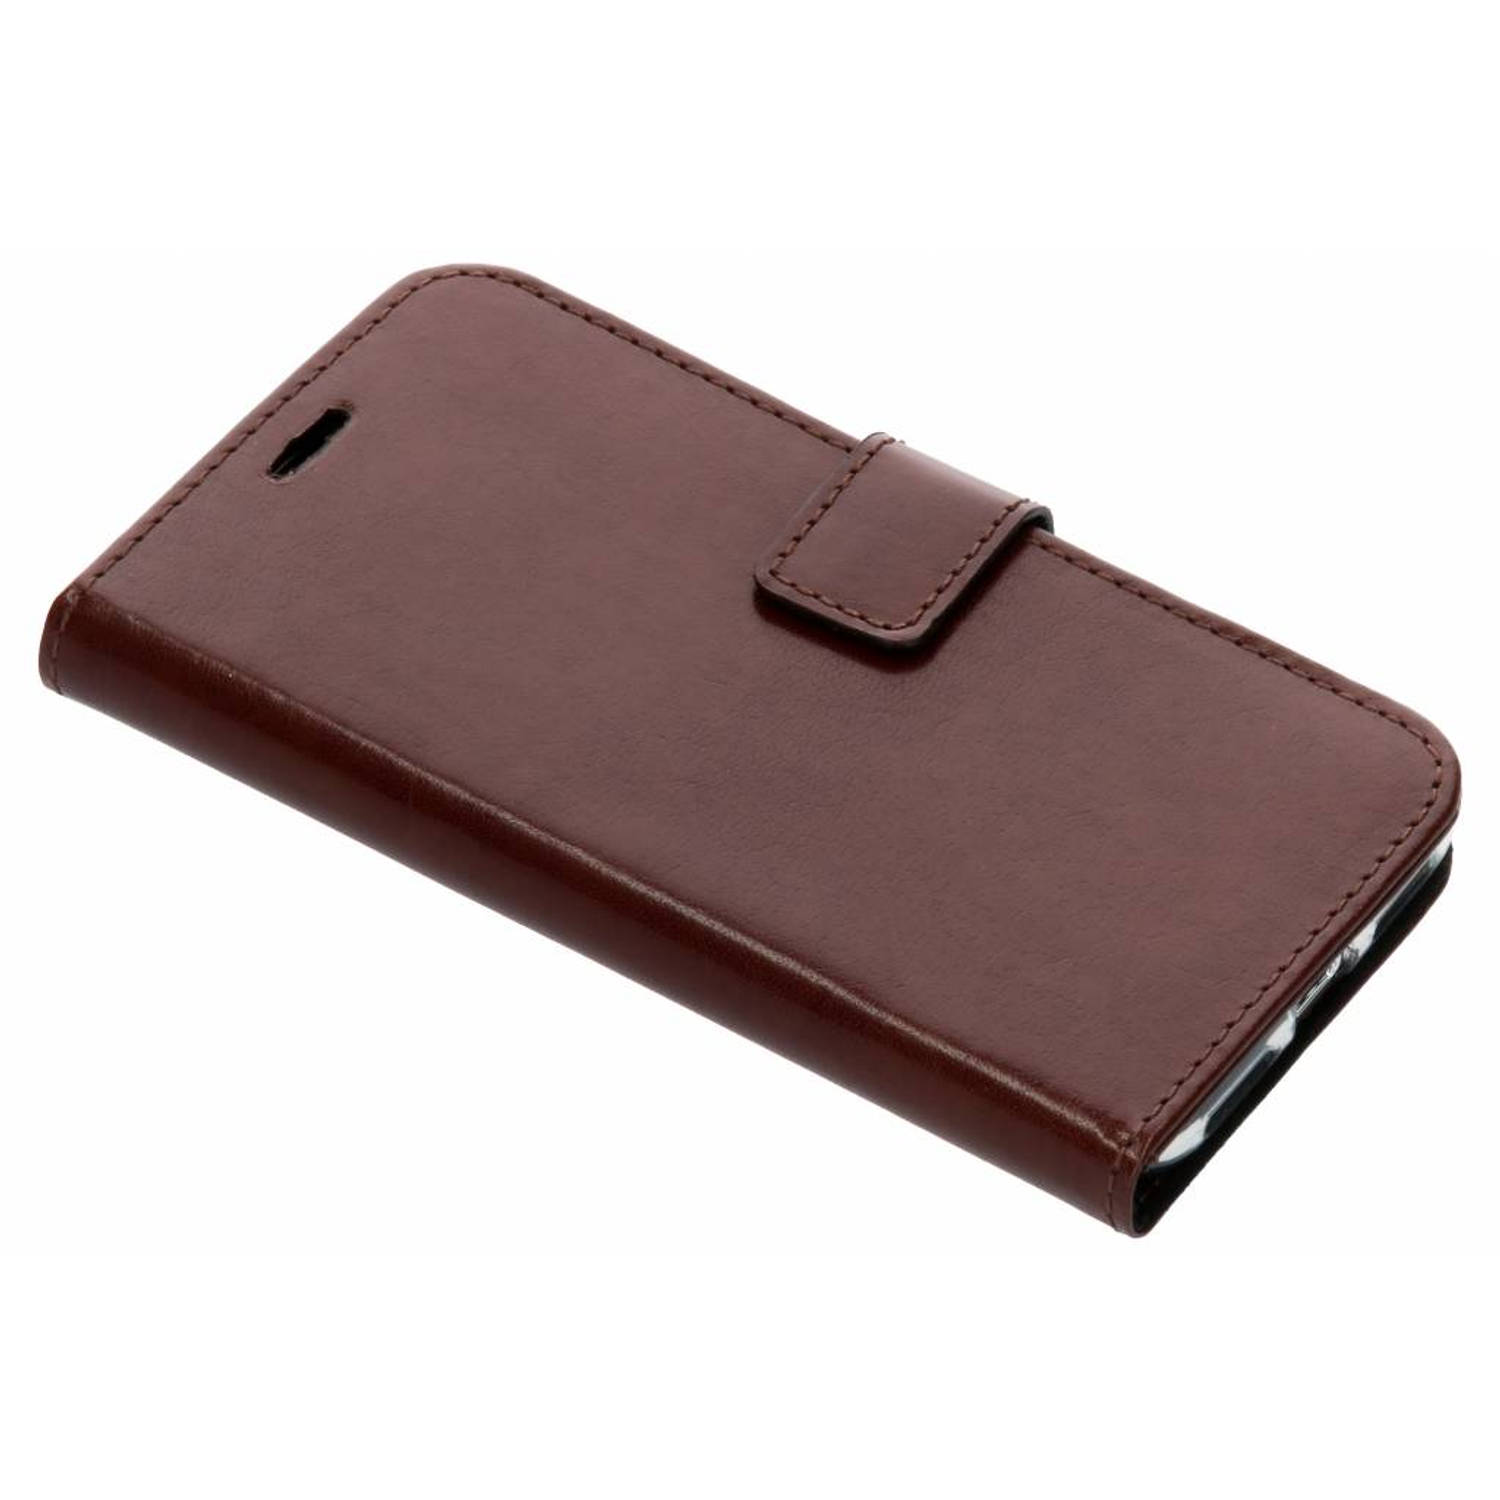 Bruine Booklet Leather voor de iPhone Xs / X